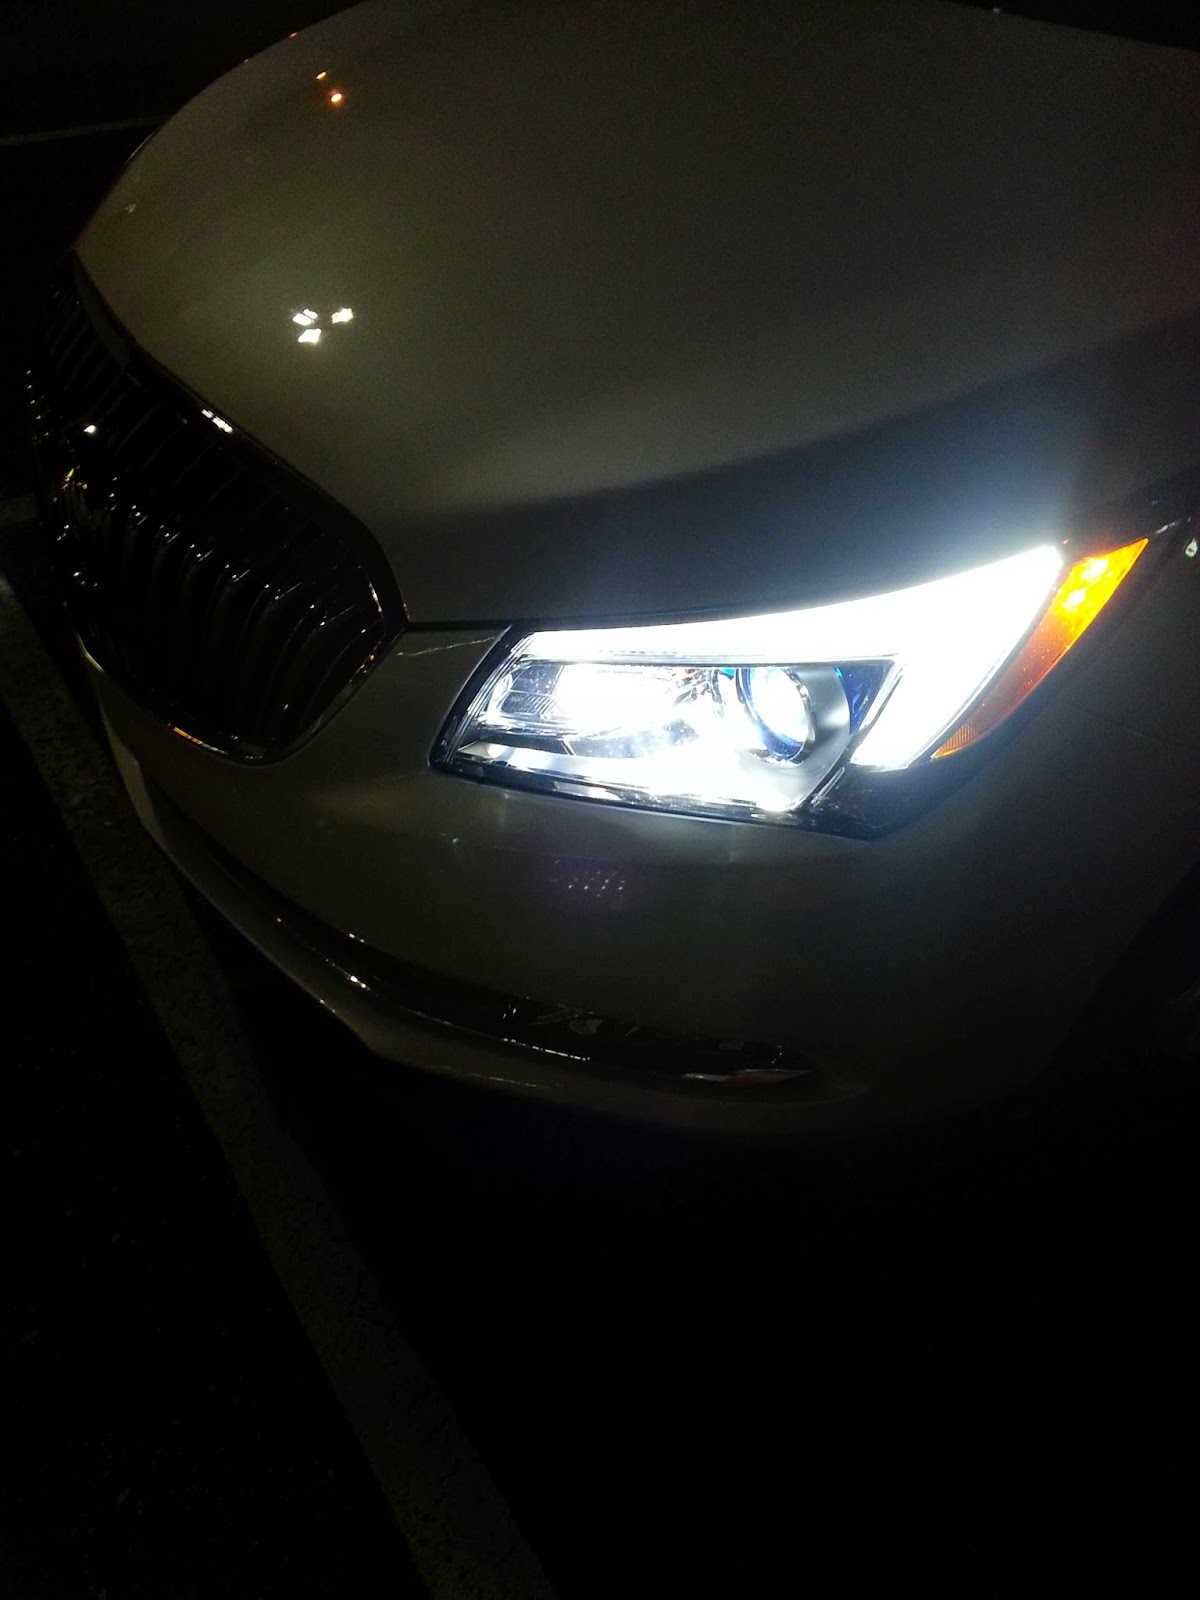 Please Note Factory 2017 Buick Lacrosse Projector Headlights Come Equip With 9006 Halogen Bulbs I Was Originally Provided H11 Series By Hid Vendor